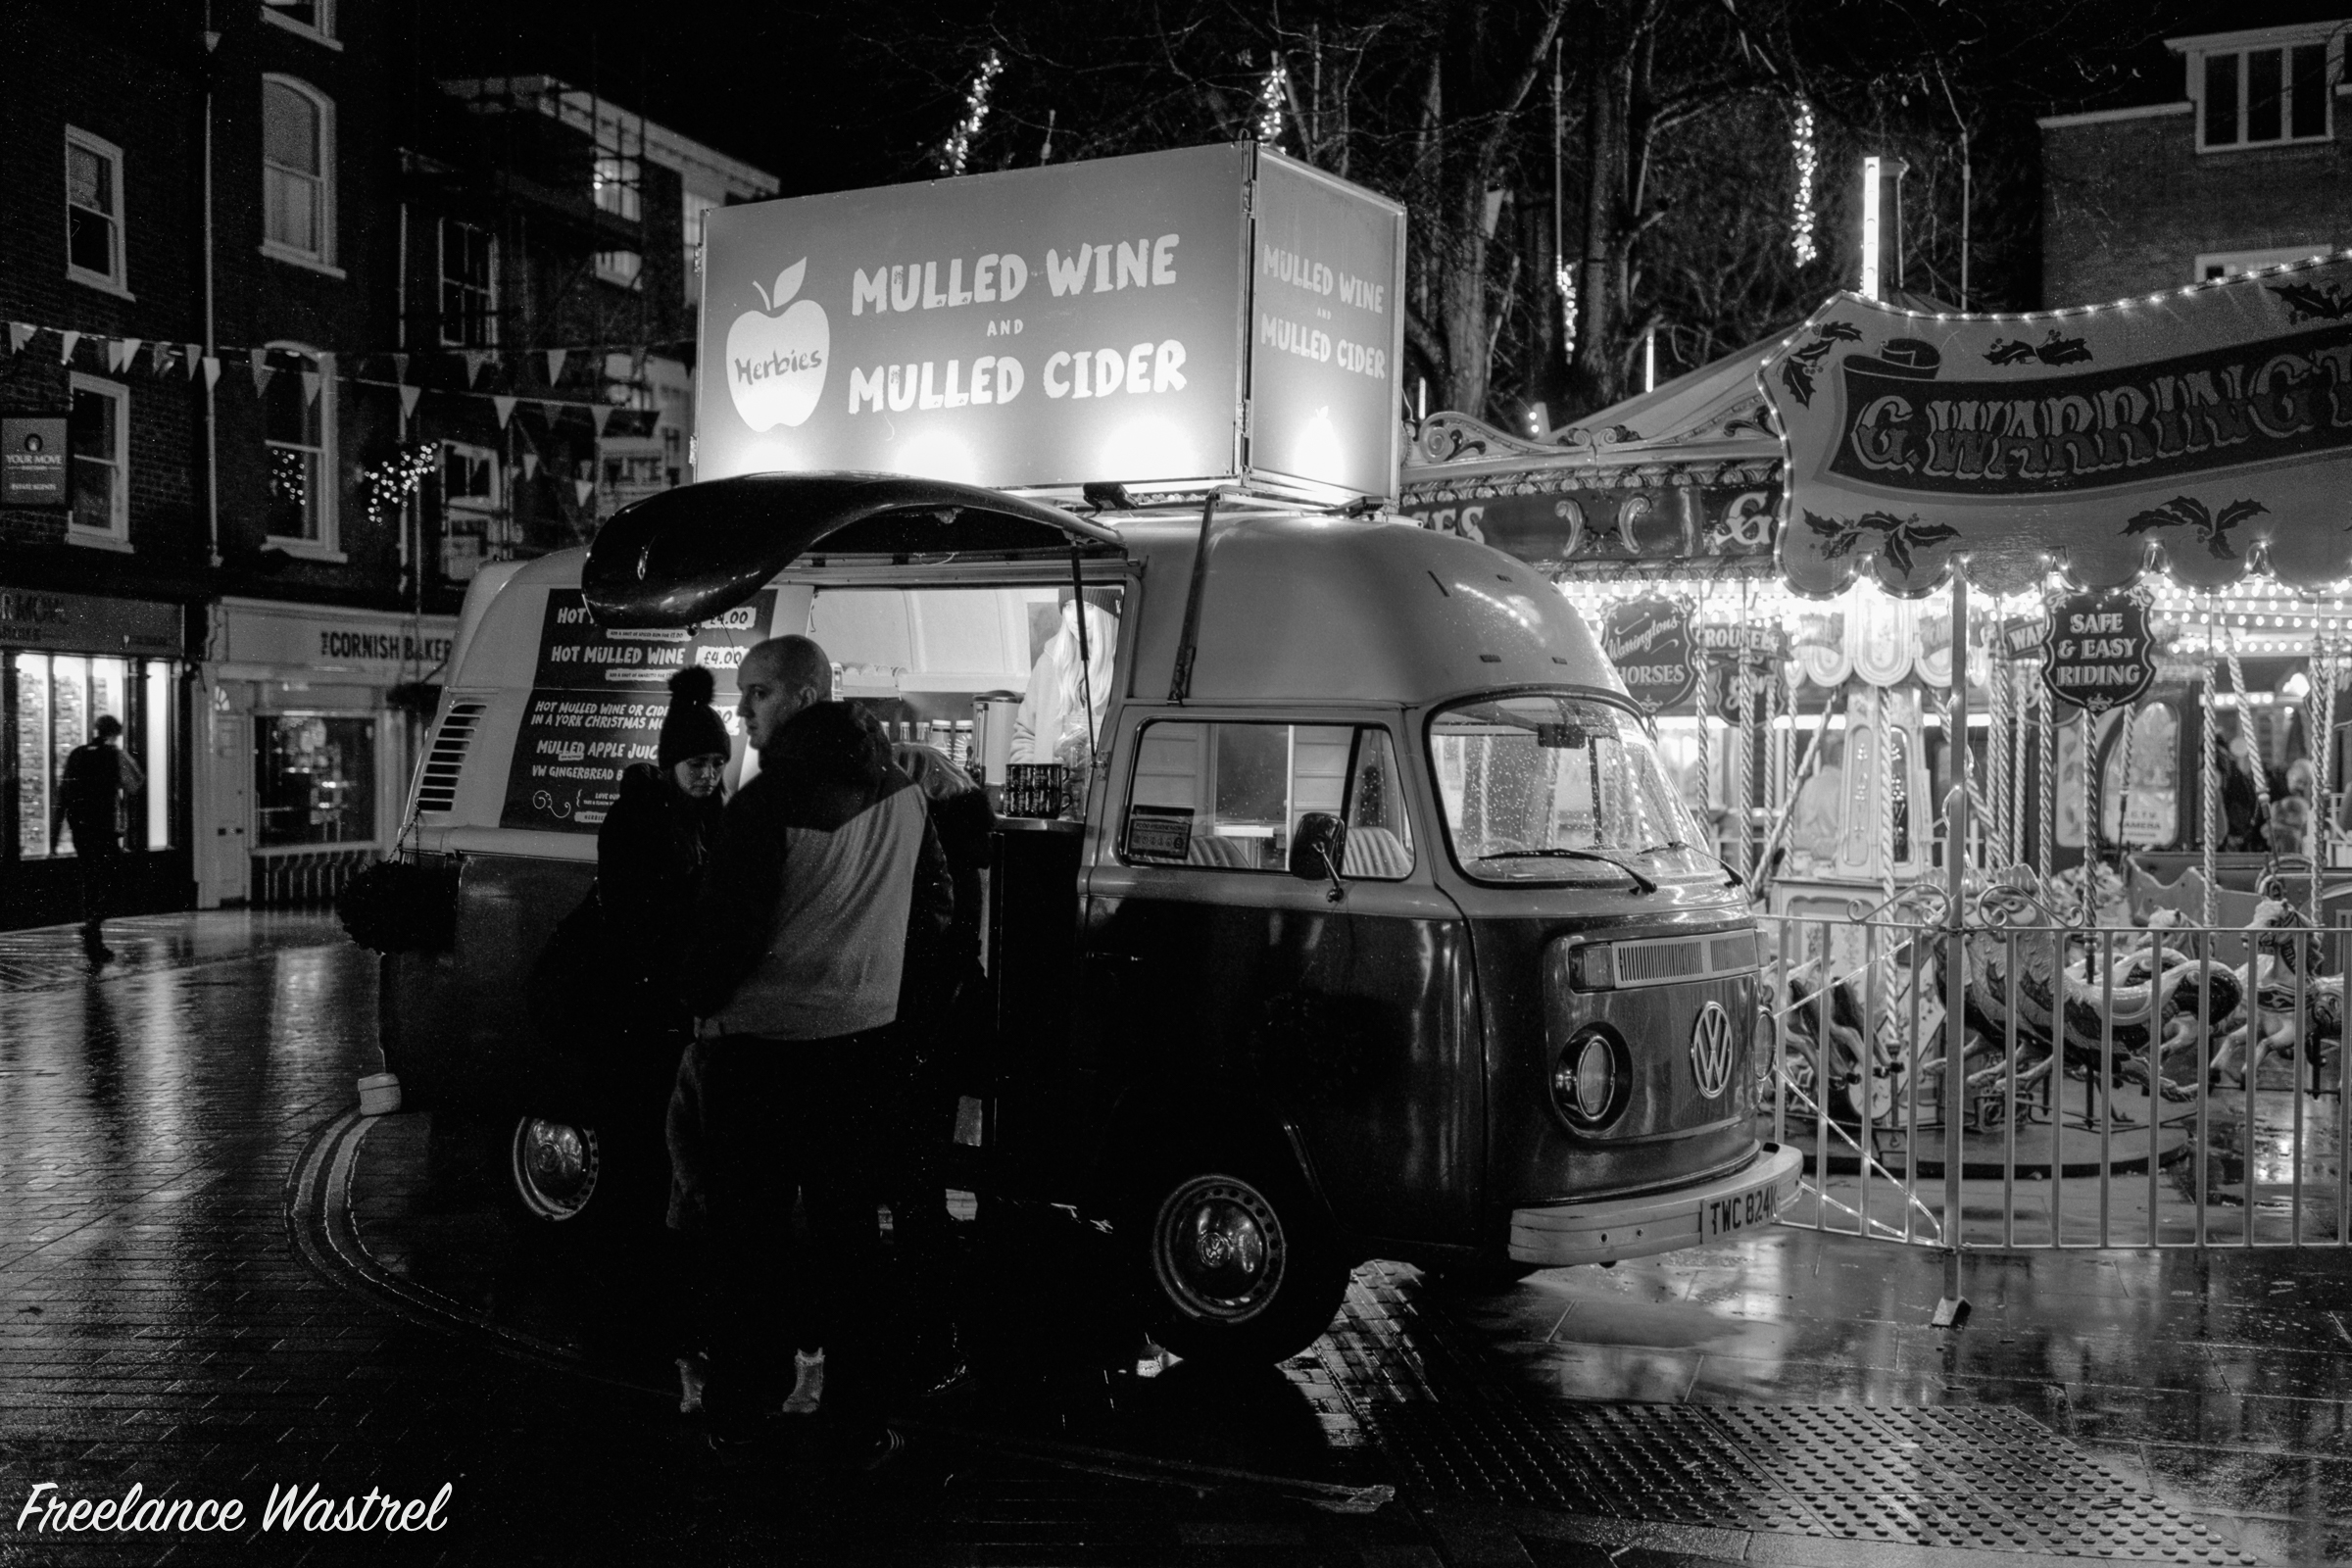 Mulled Wine and Mulled Cider, York, December 2018